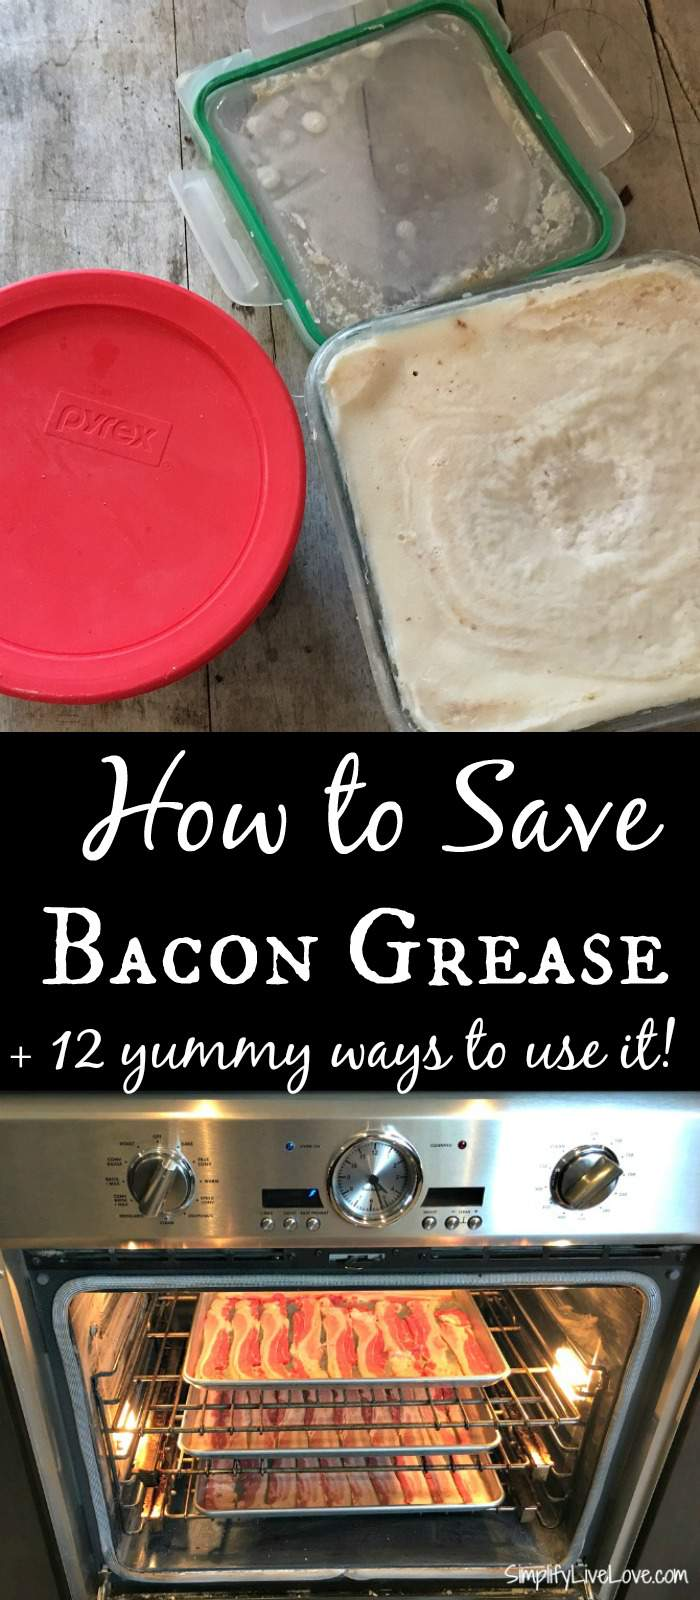 How To Save Bacon Grease & 12 Yummy Ways To Use It! It's Easy